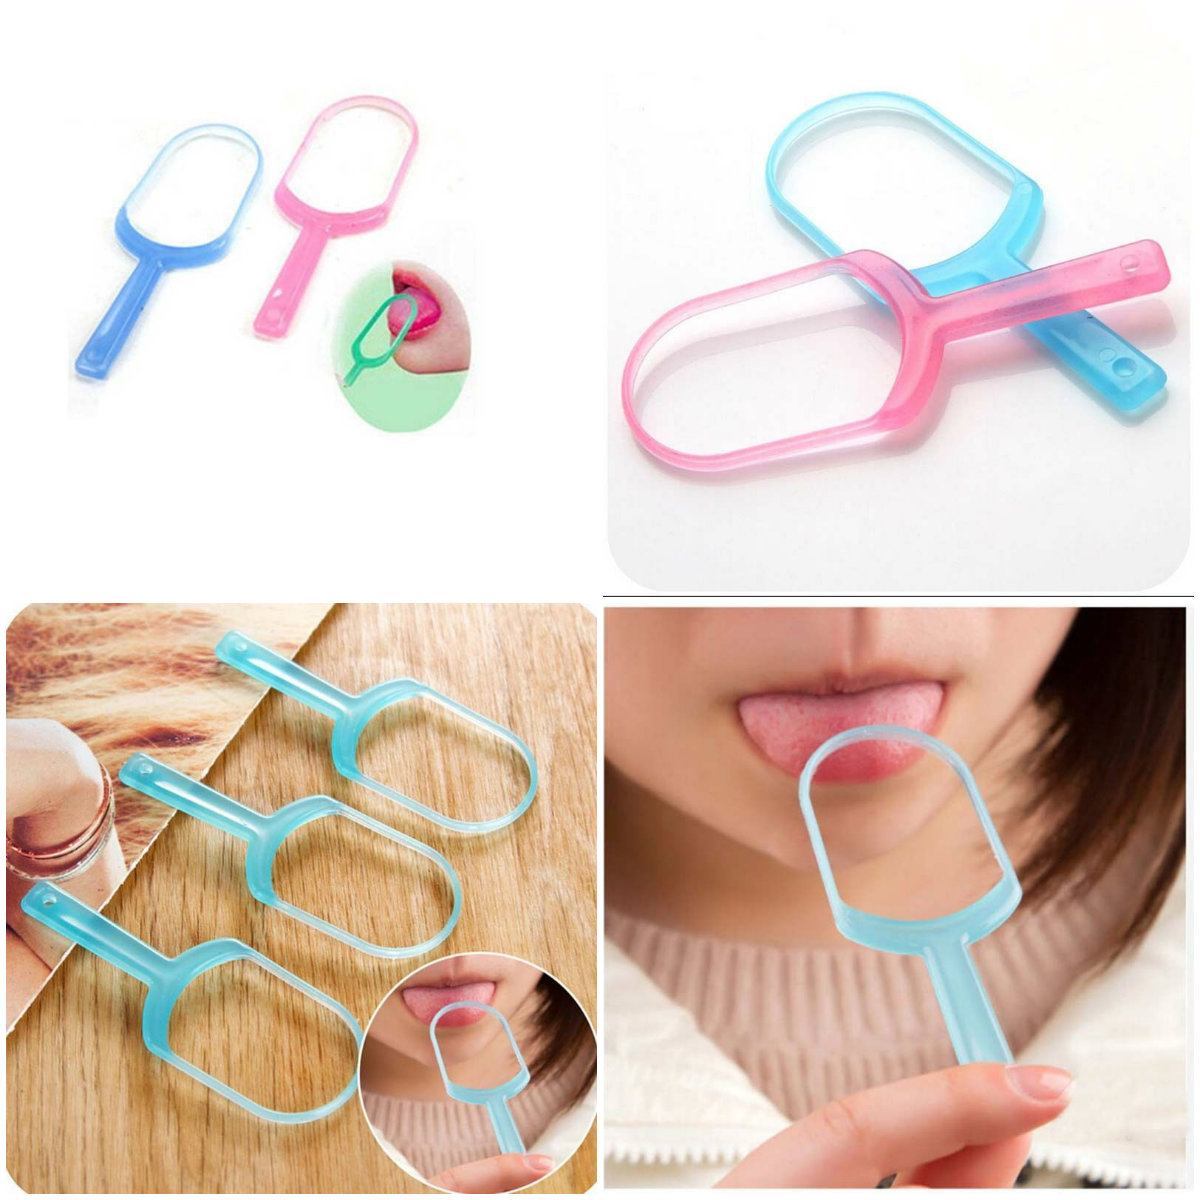 1PCS Tongue Brush Tongue Cleaner Scraper Cleaning Tongue Scraper For Oral Care Oral Hygiene Keep Fresh Breath